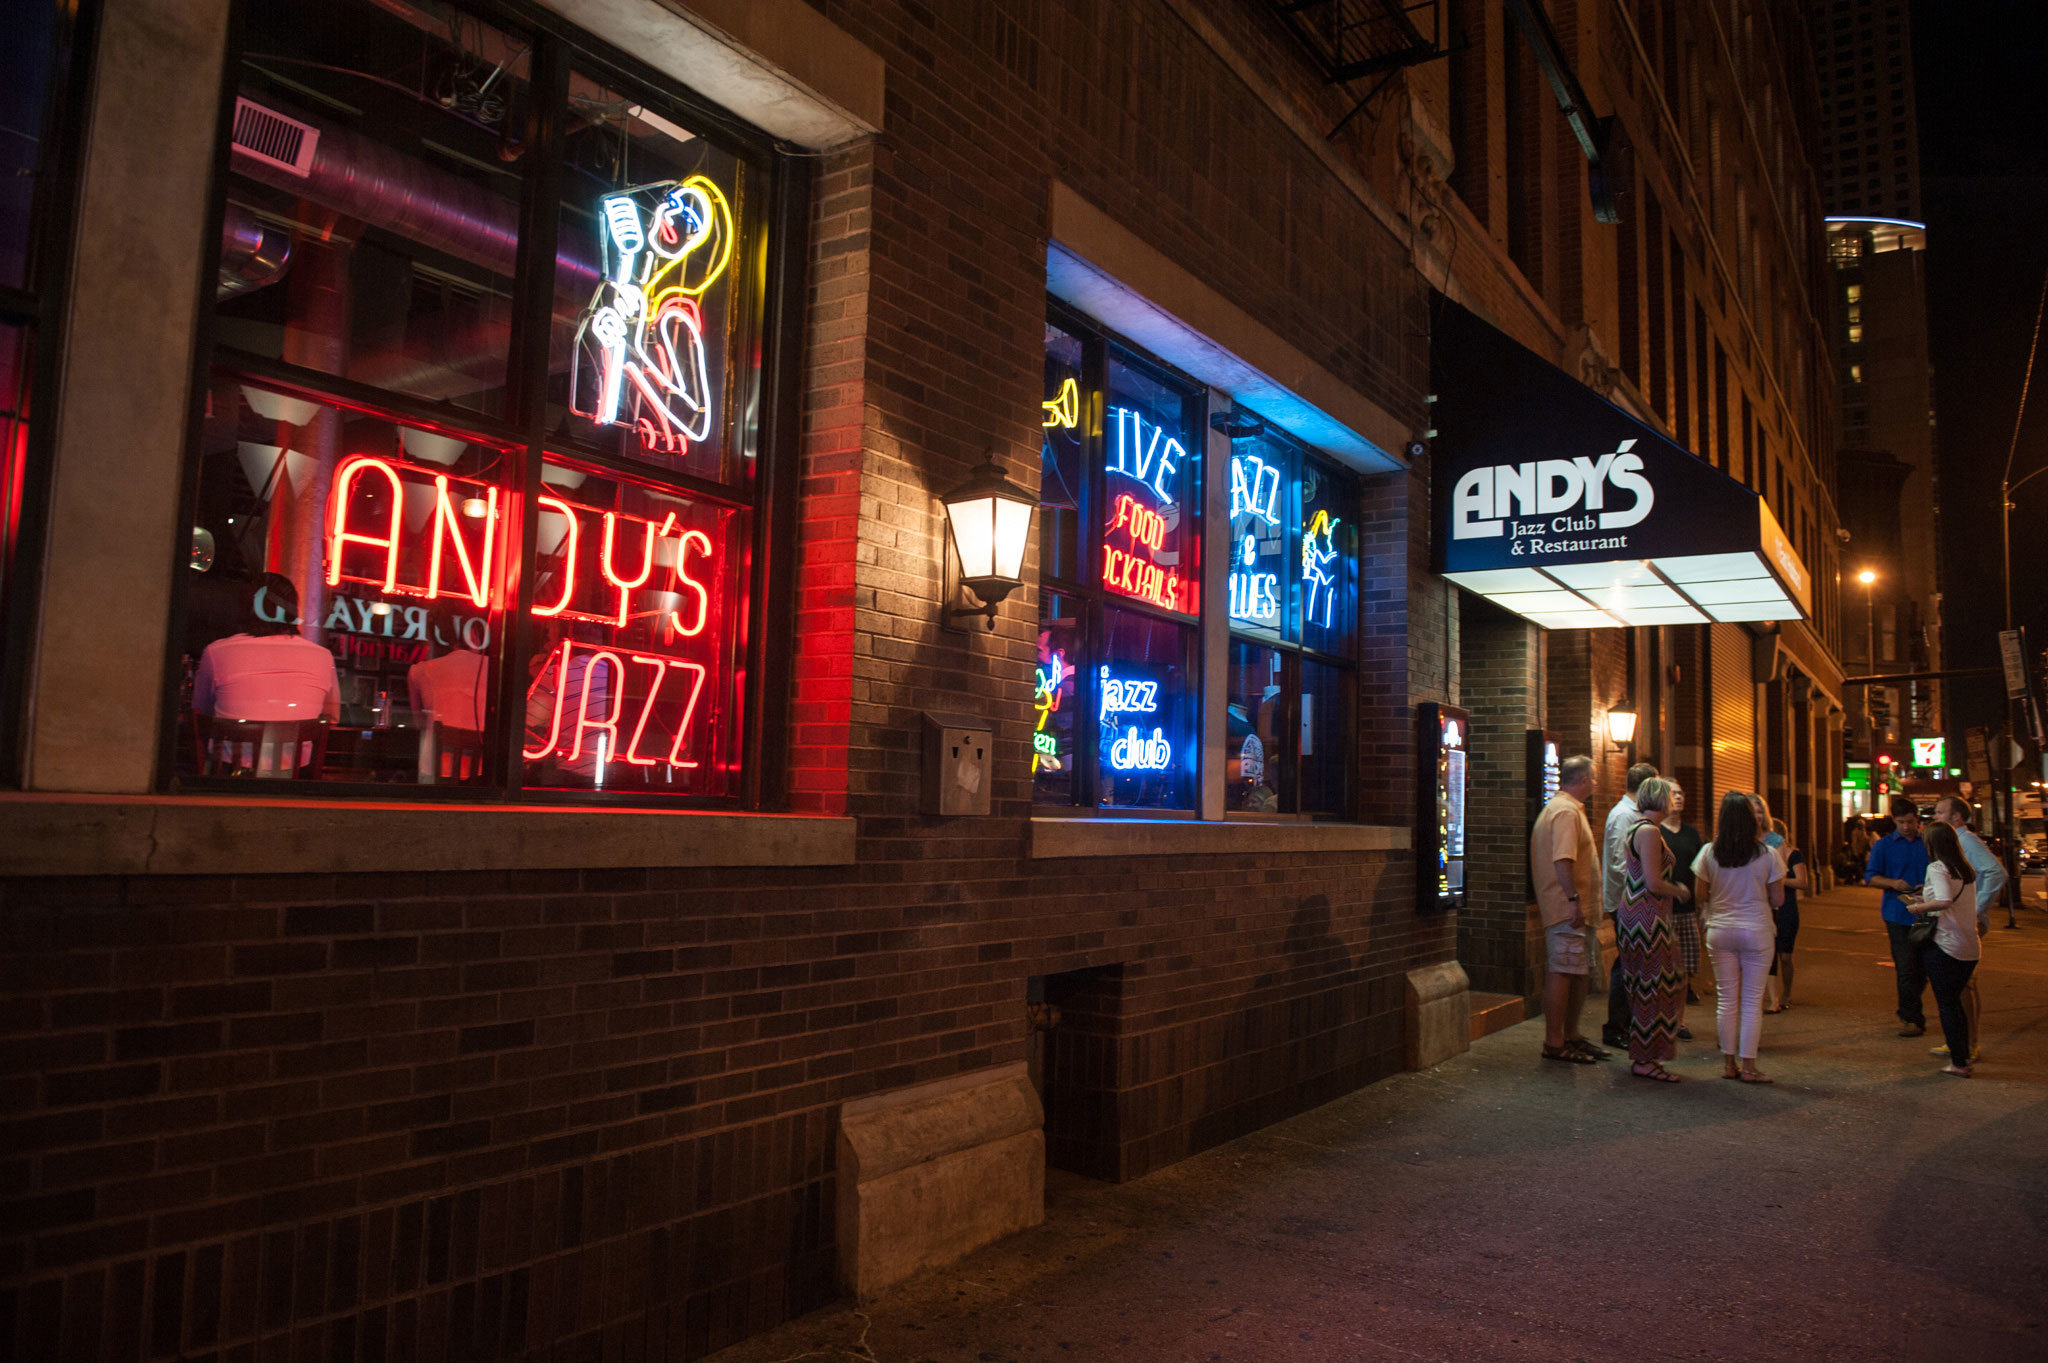 Andy's Jazz Club & Restaurant | Clubs in River North, Chicago